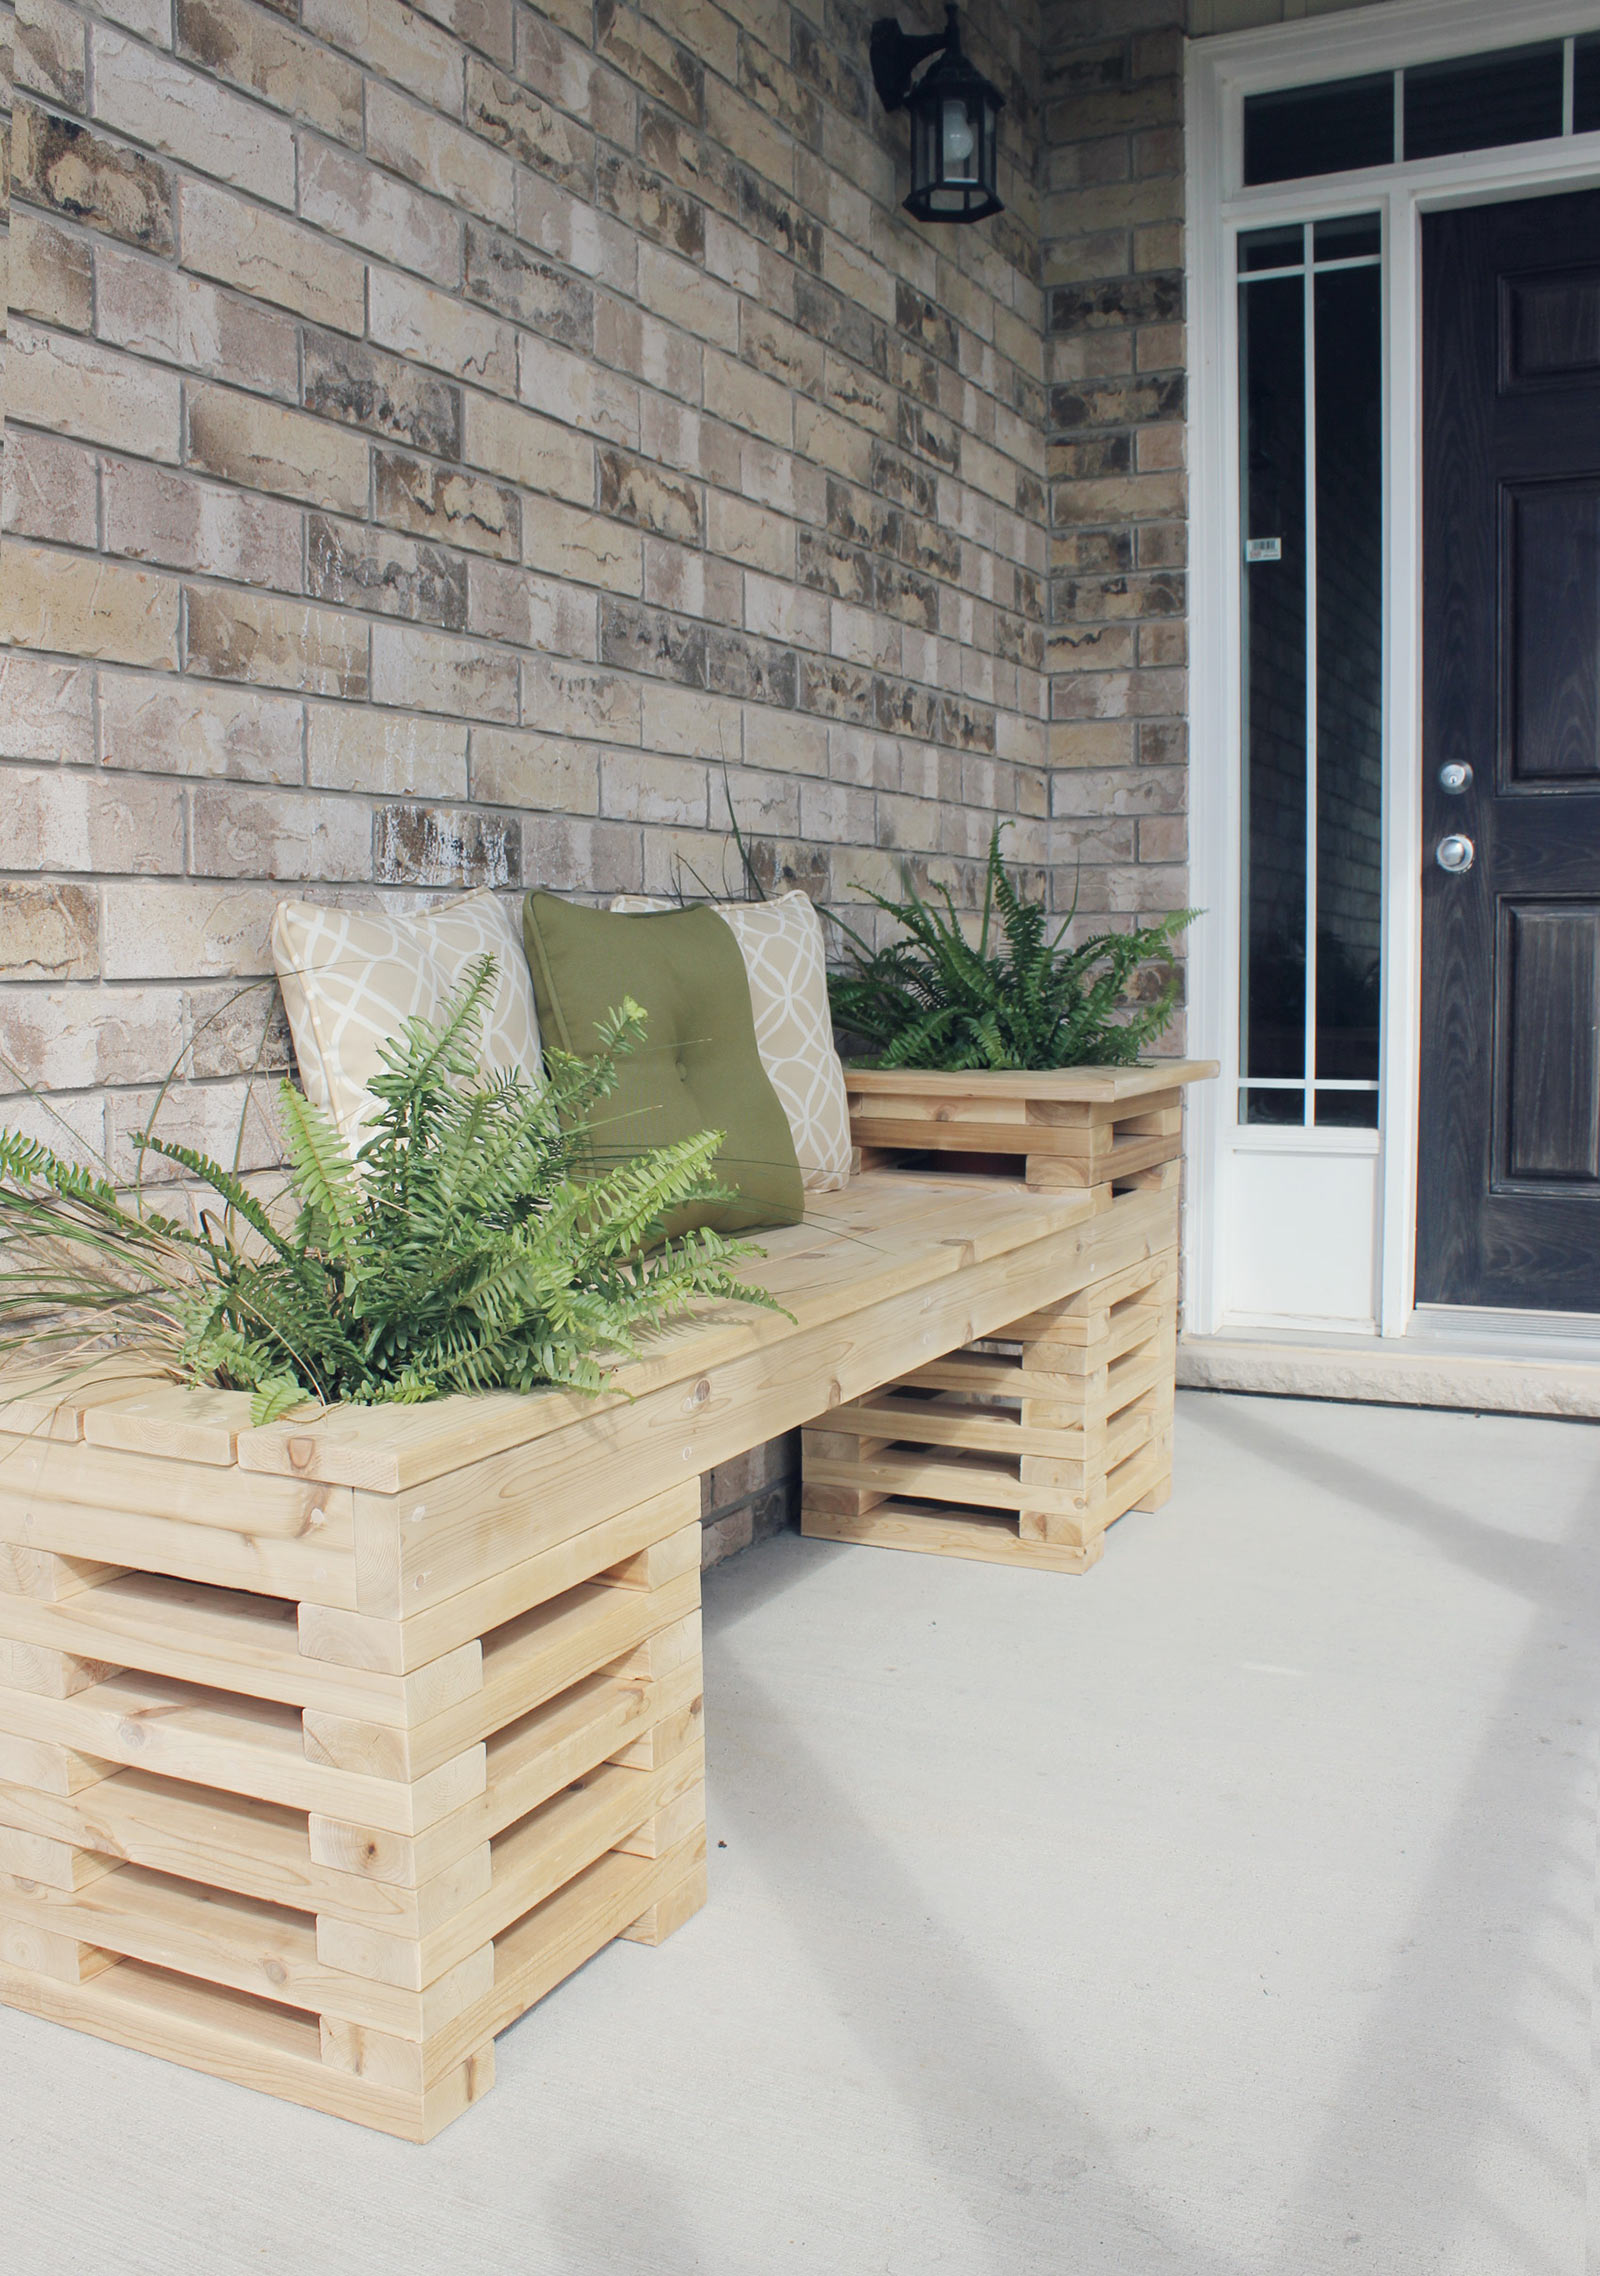 Summer diy challenge with the home depot the build brittany stager cedar bench finished3 solutioingenieria Choice Image